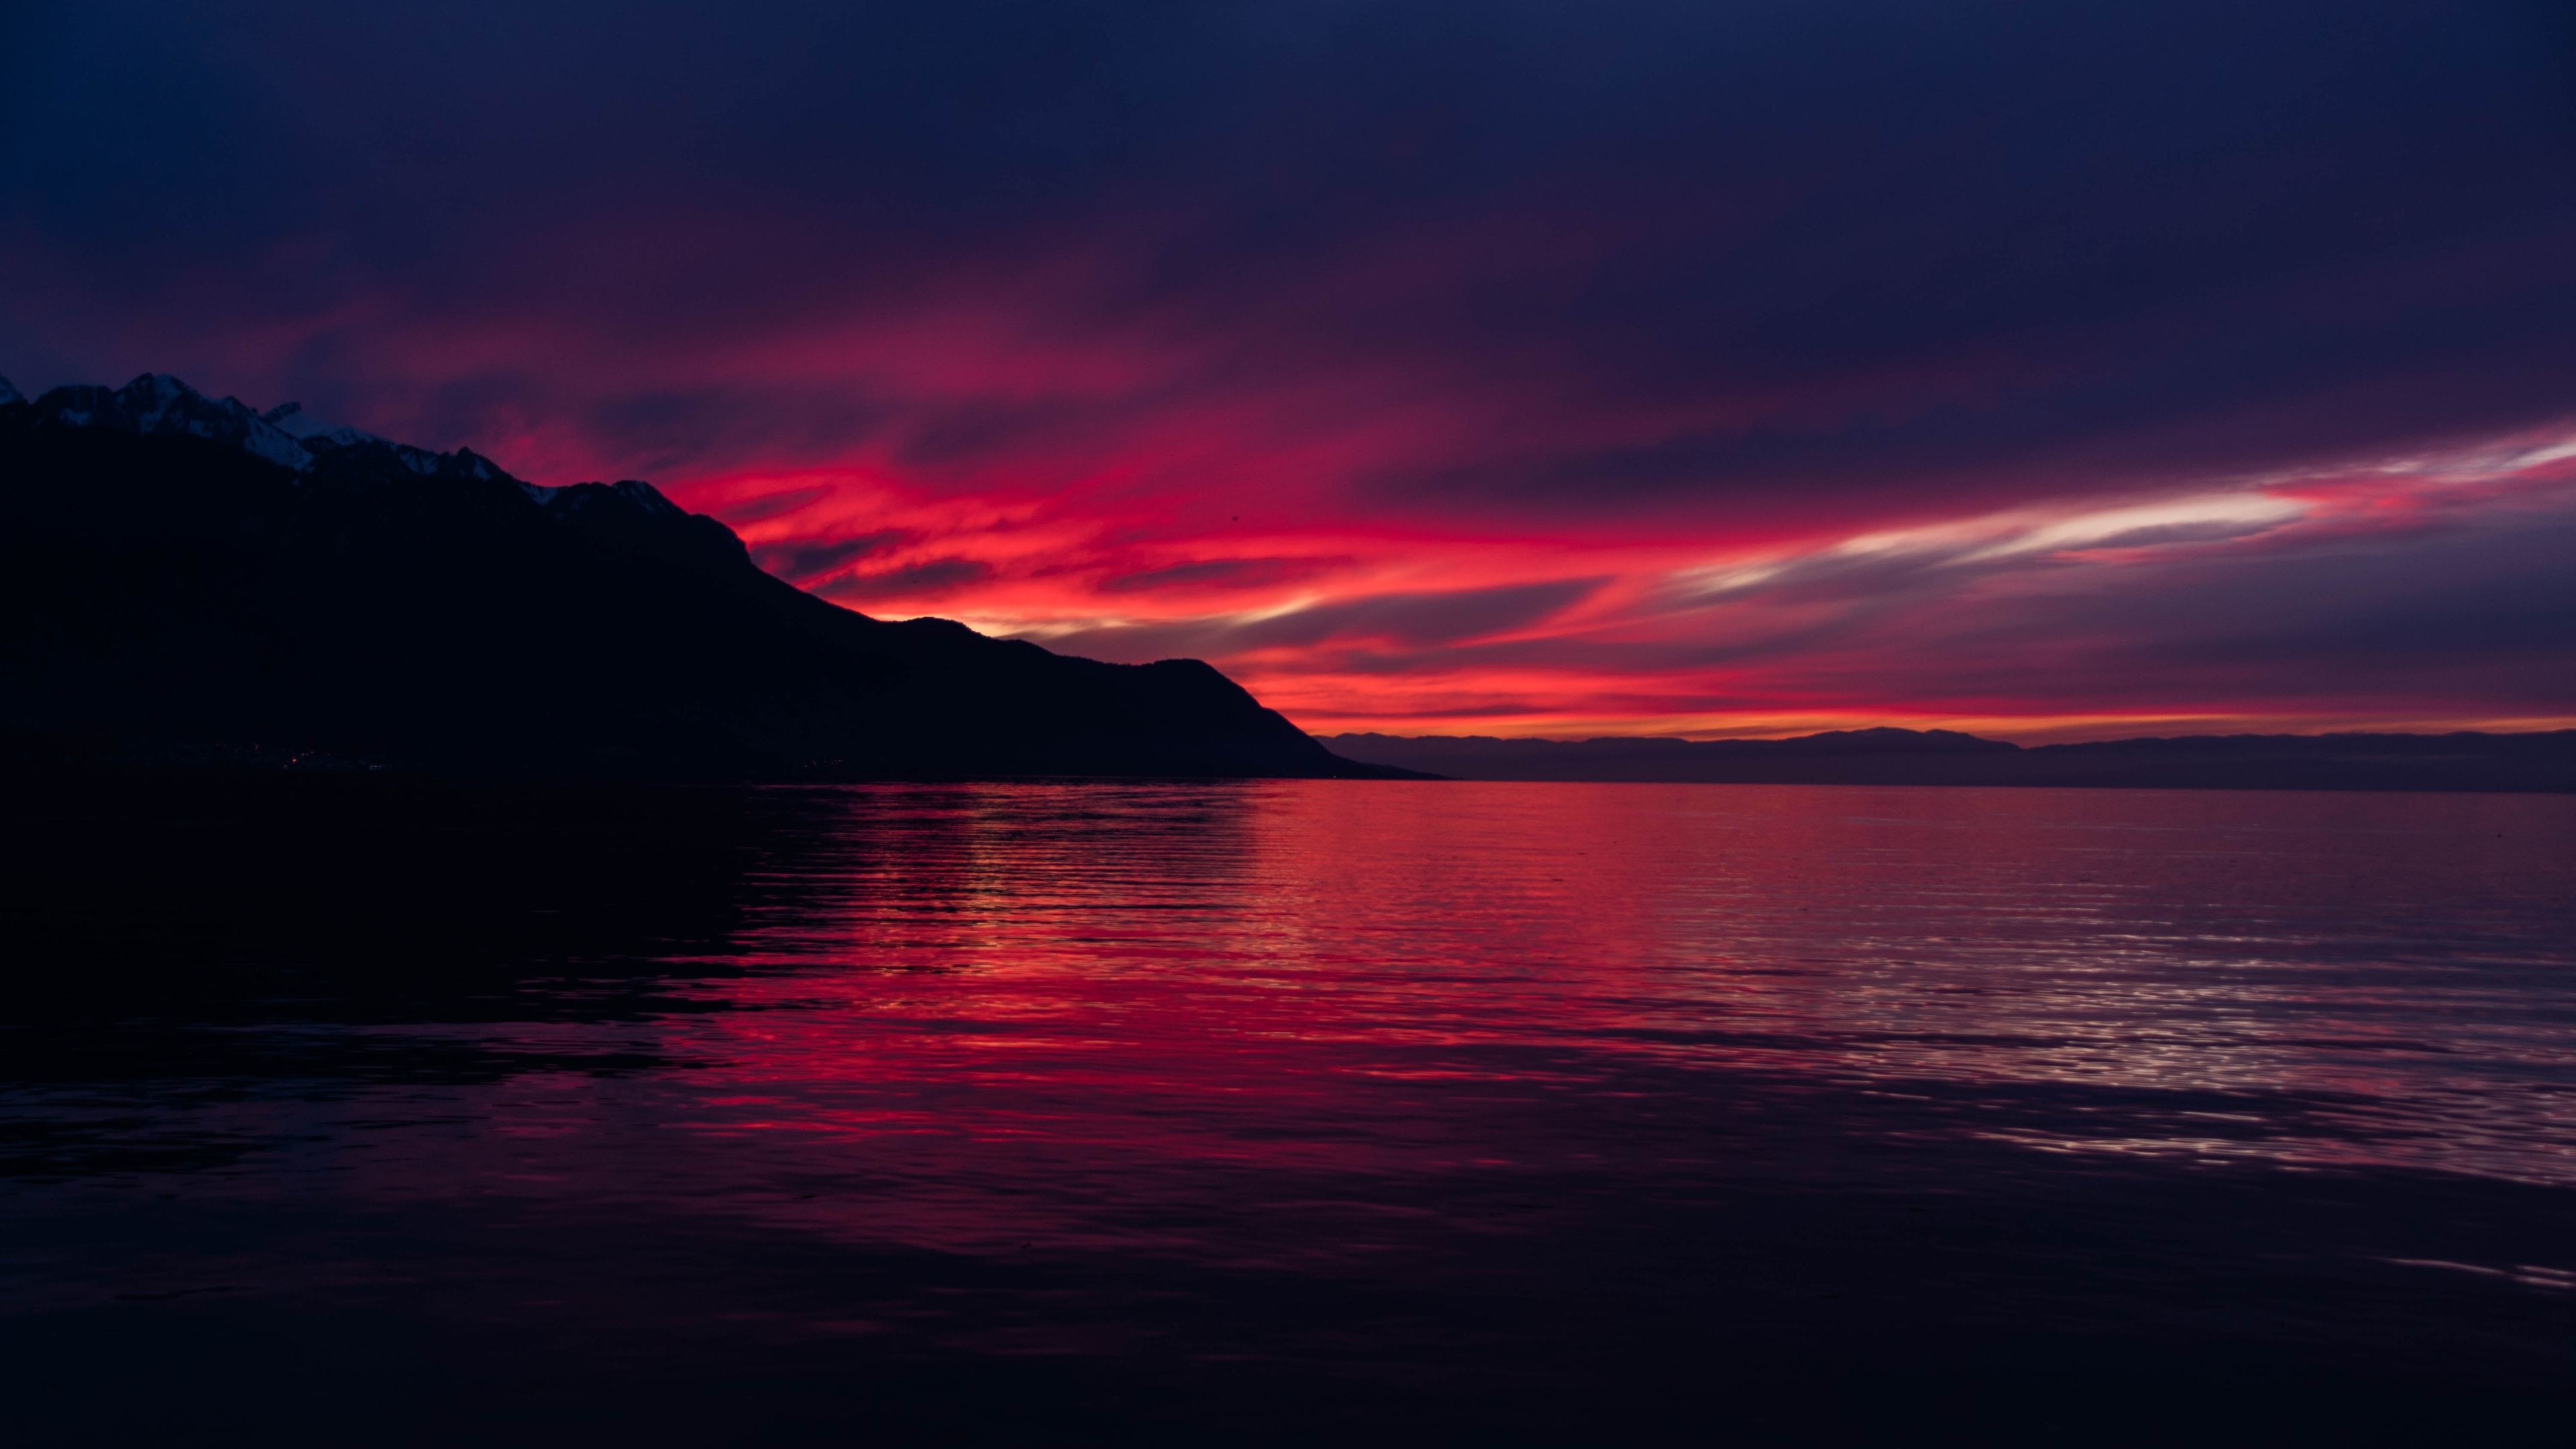 1242x2688 4k Dark Sunset Iphone Xs Max Wallpaper Hd Nature 4k Wallpapers Images Photos And Background